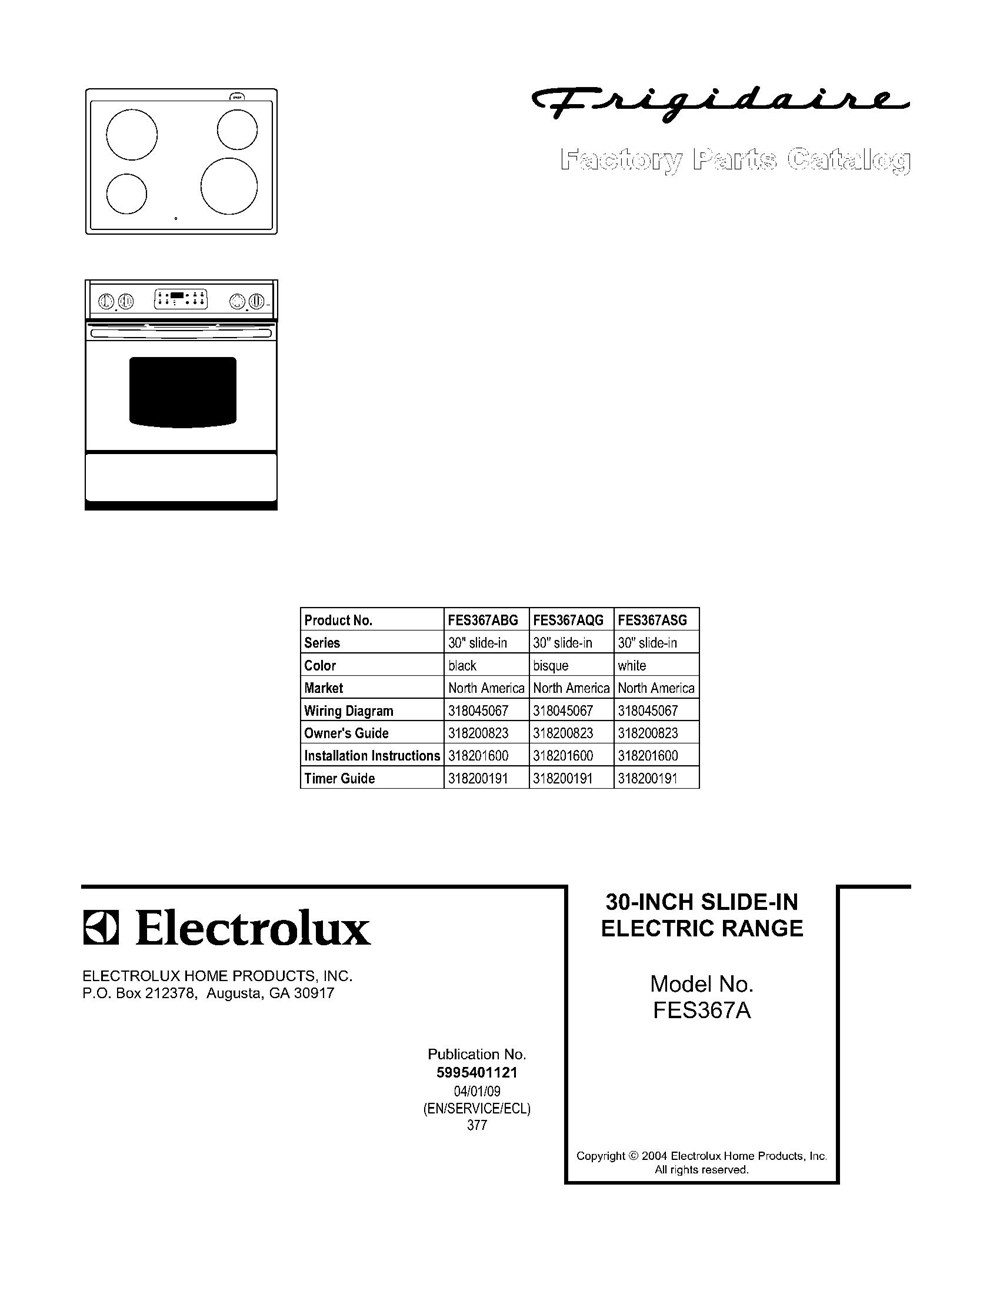 Fes367asg Frigidaire Company Backguard 05body 07top Drawer 09door 01cover 10wiring Diagram